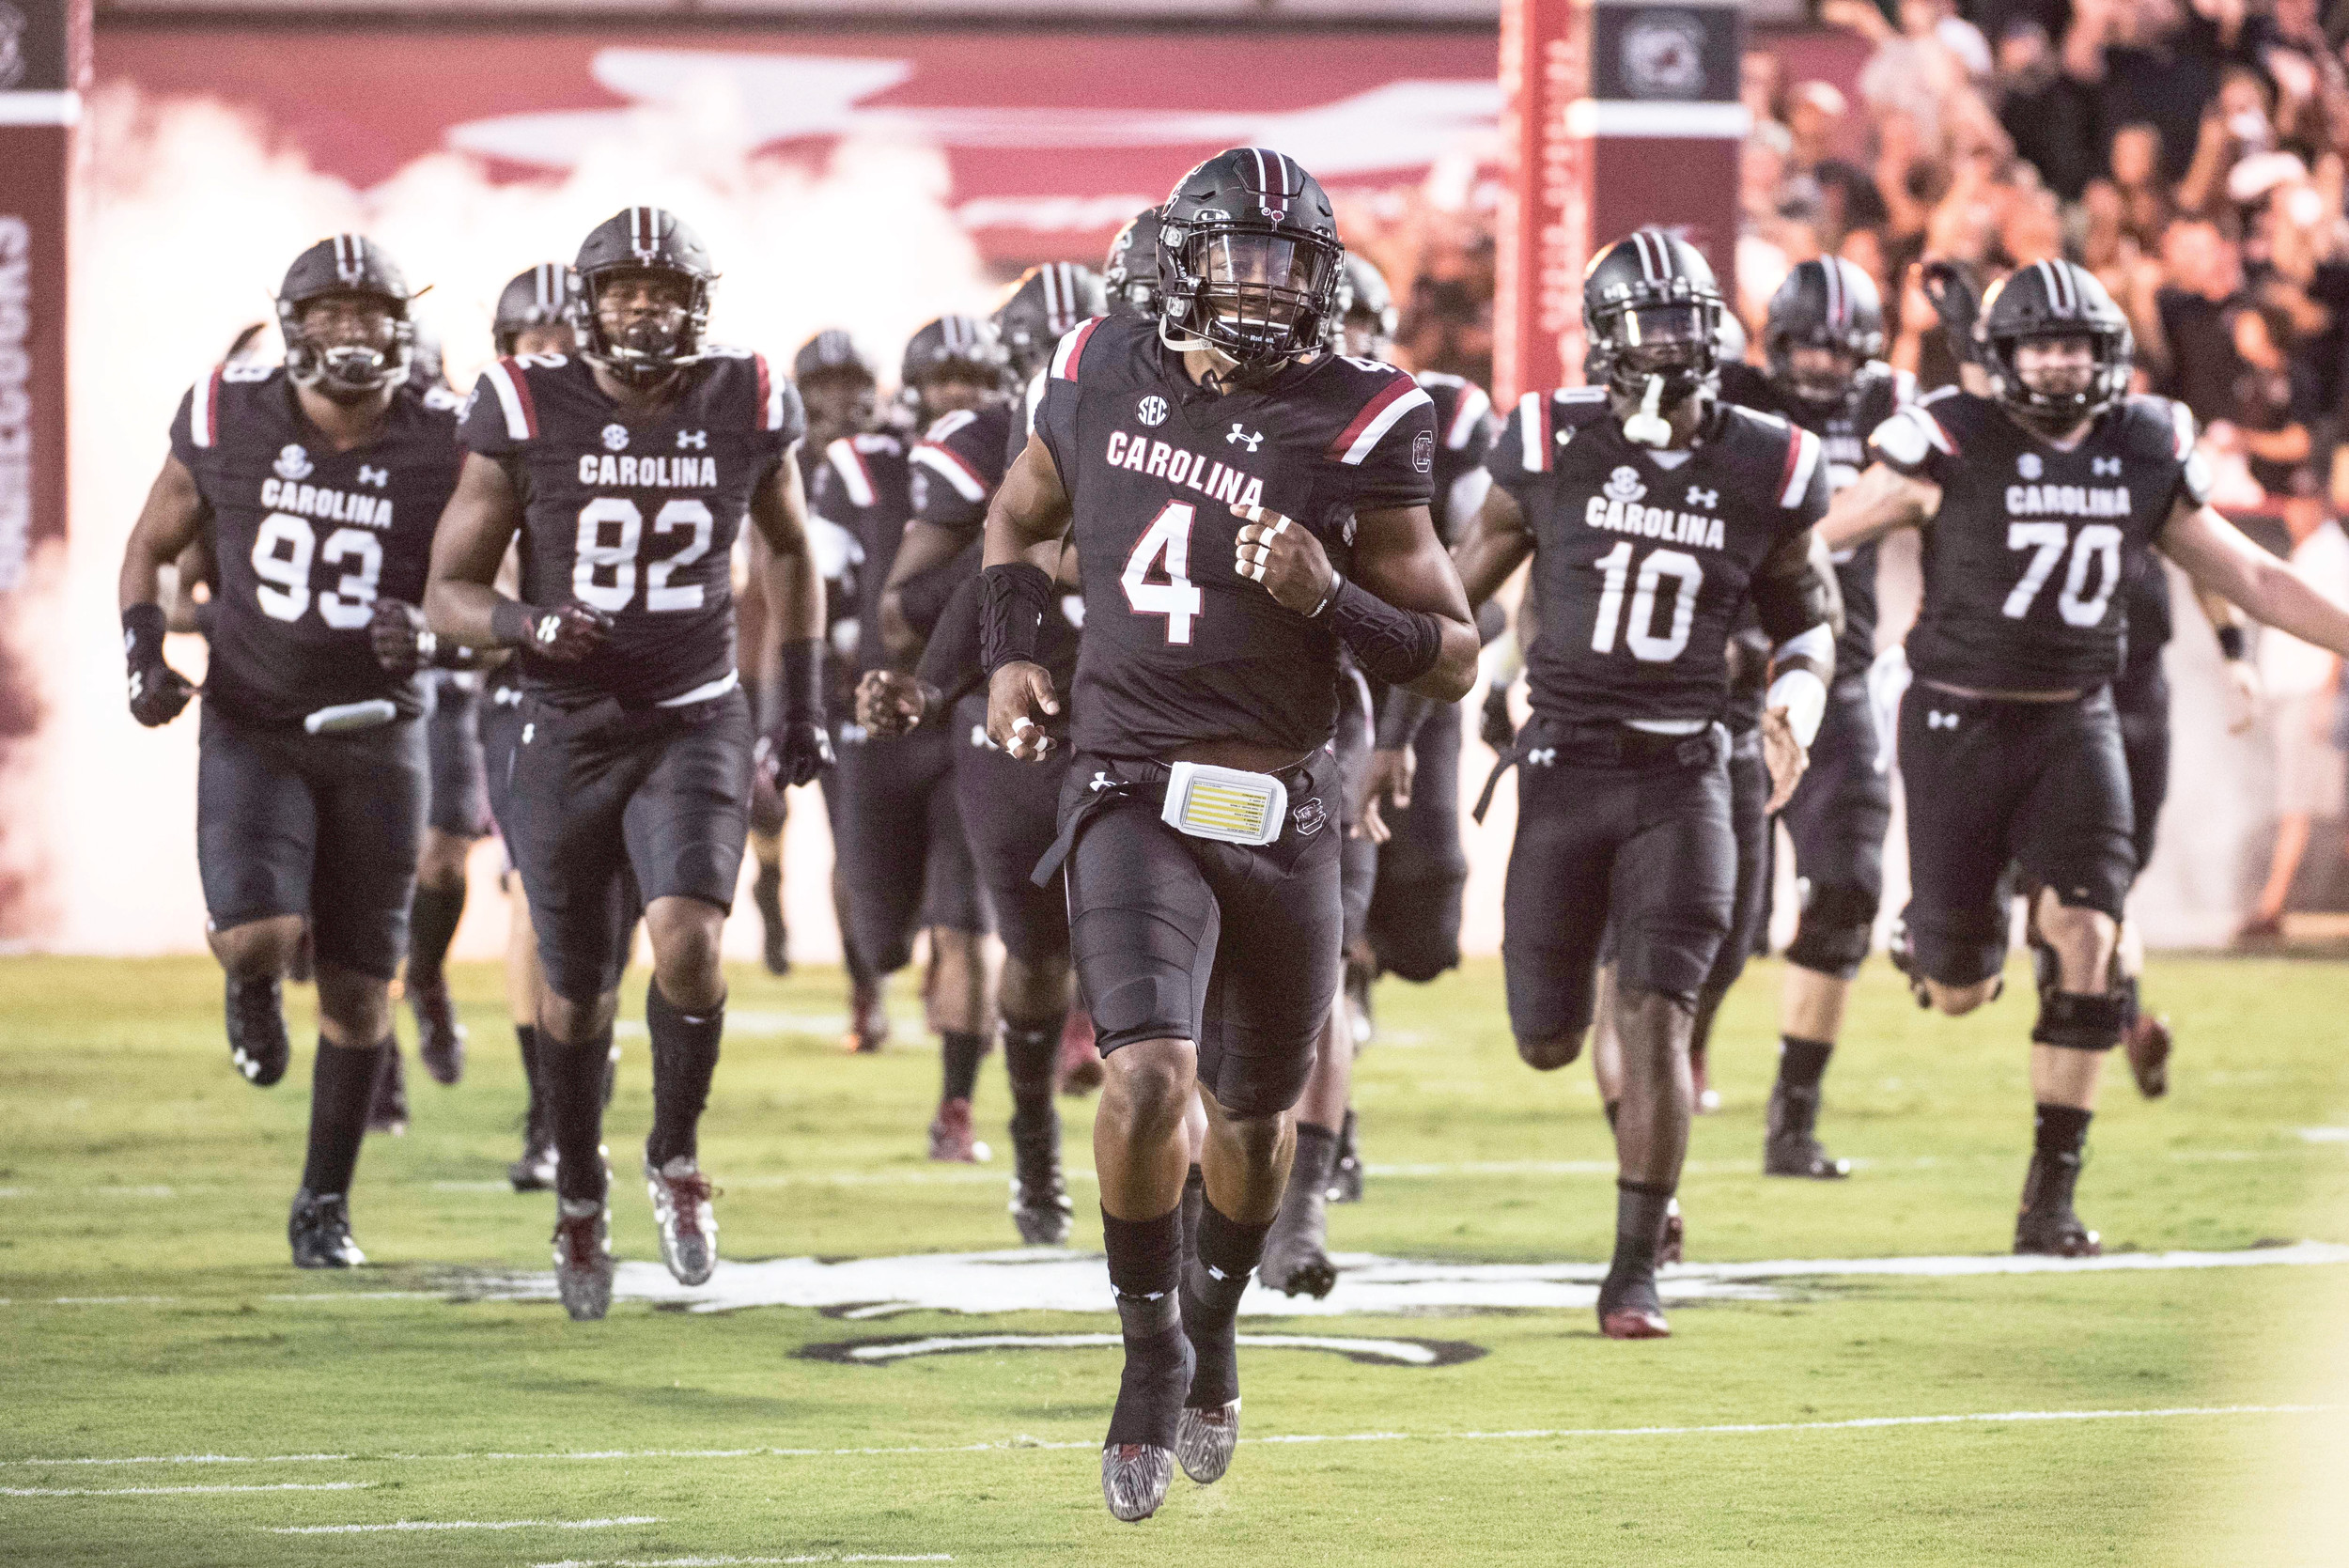 South Carolina suffered another devastating injury on Saturday when starting linebacker Bryson Allen-Williams (4) went down. He had shoulder surgery this week and is out for the rest of the year, which is more than likely the same diagnosis for wide receiver Deebo Samuel.